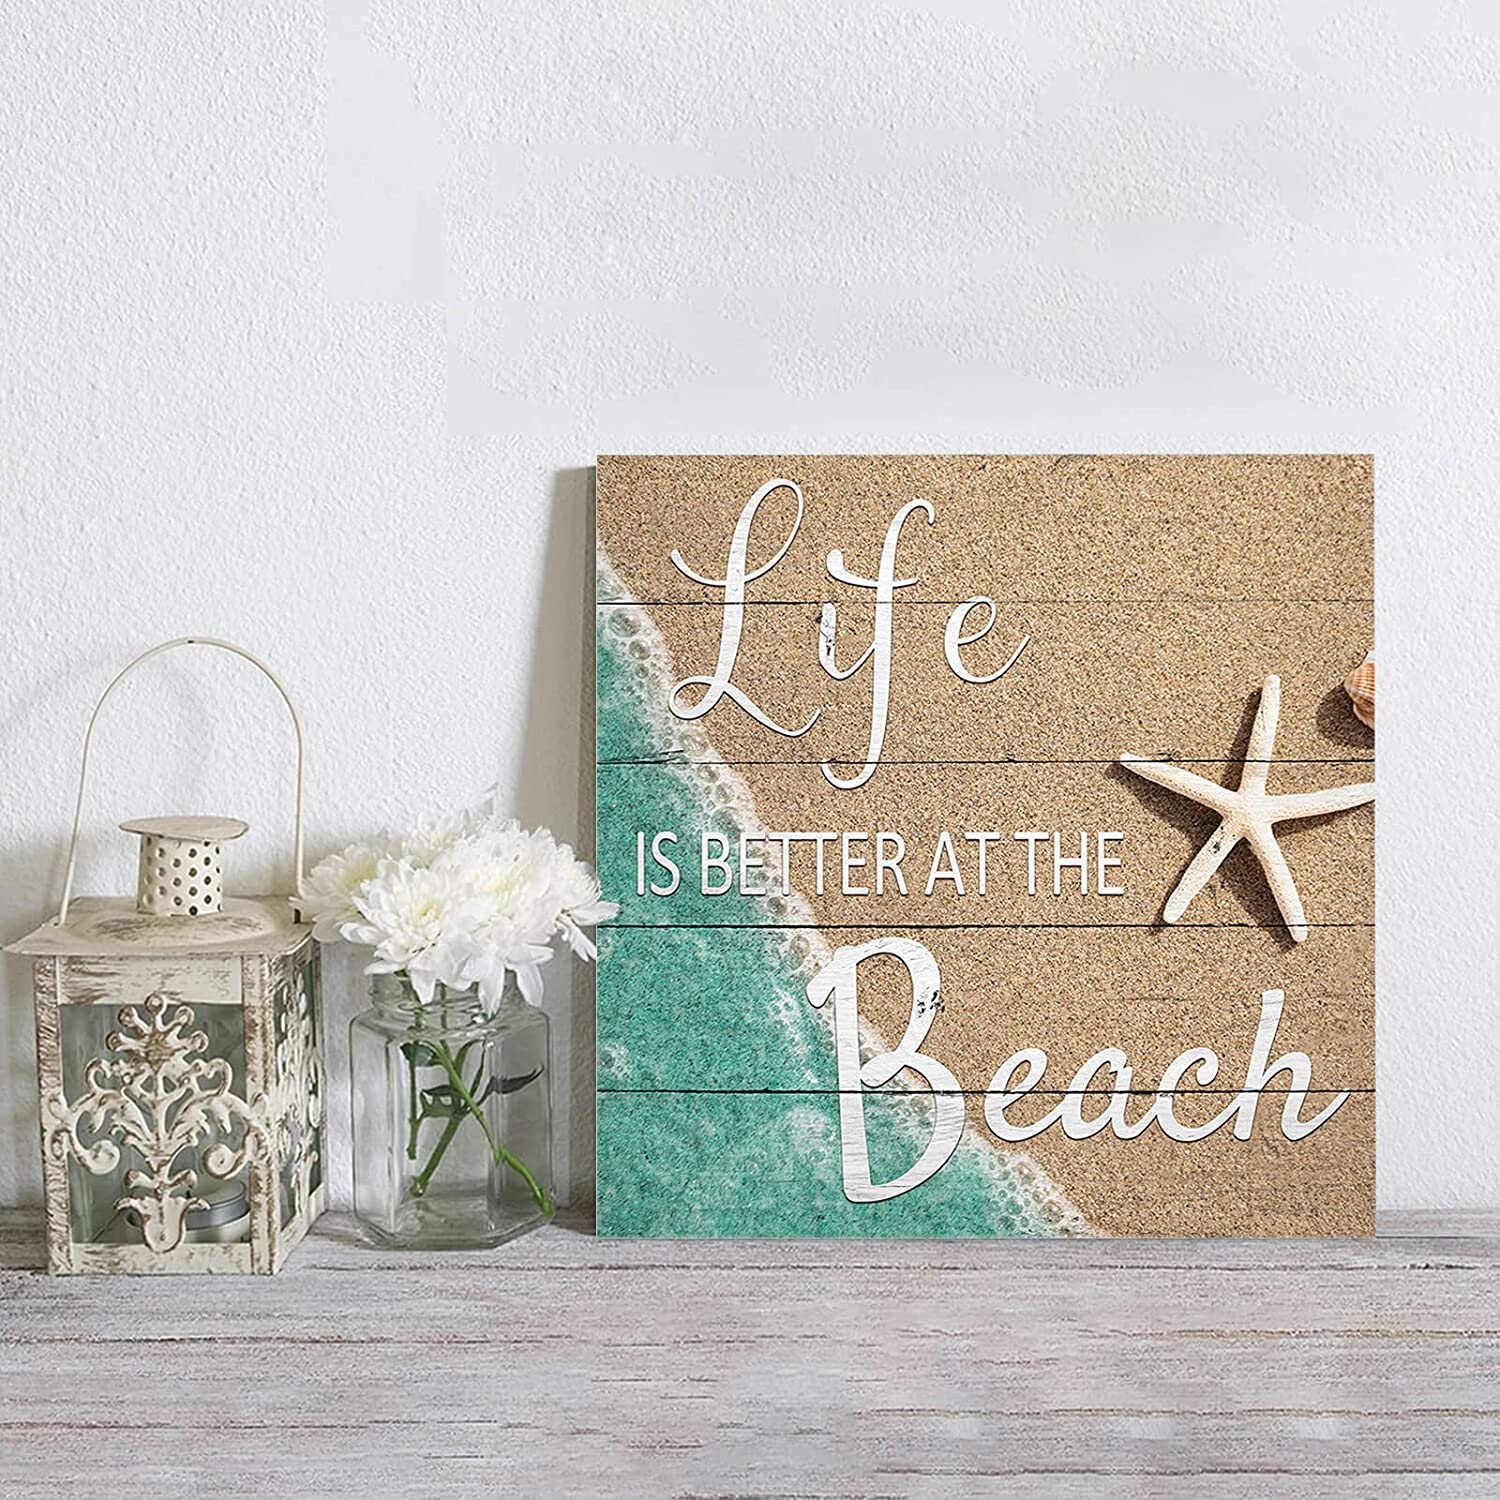 MuswannaA Canvas Wall Art Life is Super popular specialty store Sea The Starfi Beach at Sales for sale Better